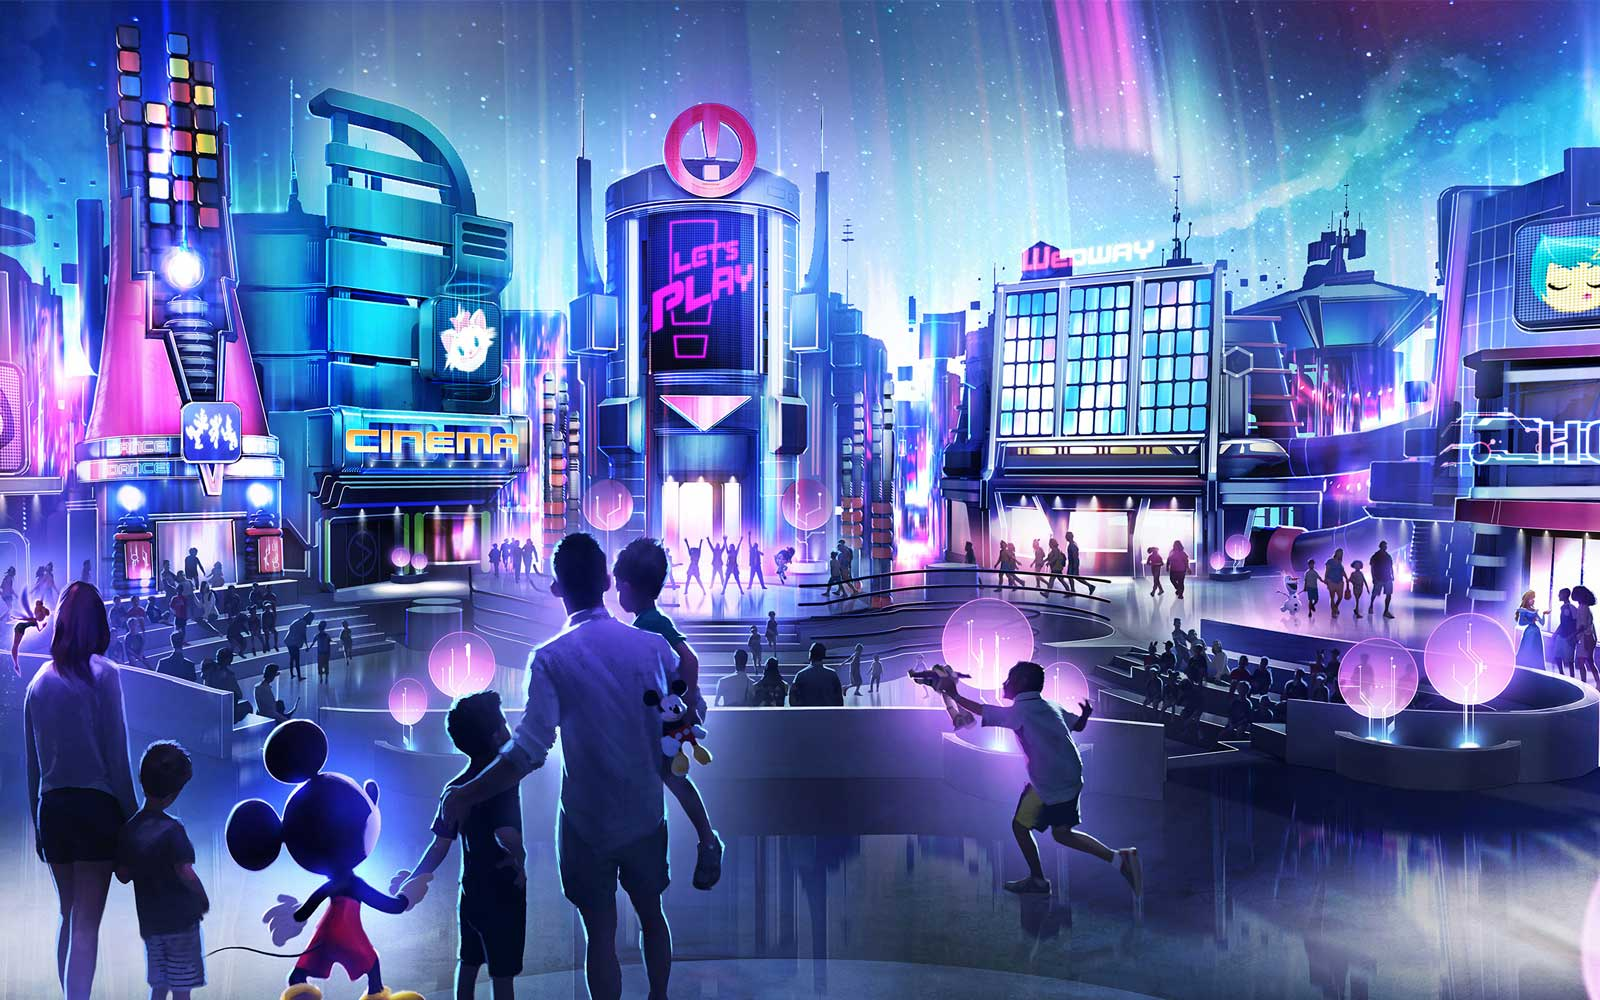 In this artist rendering, a new play pavilion in development at Epcot will include first-of-their-kind experiences devoted to playful fun